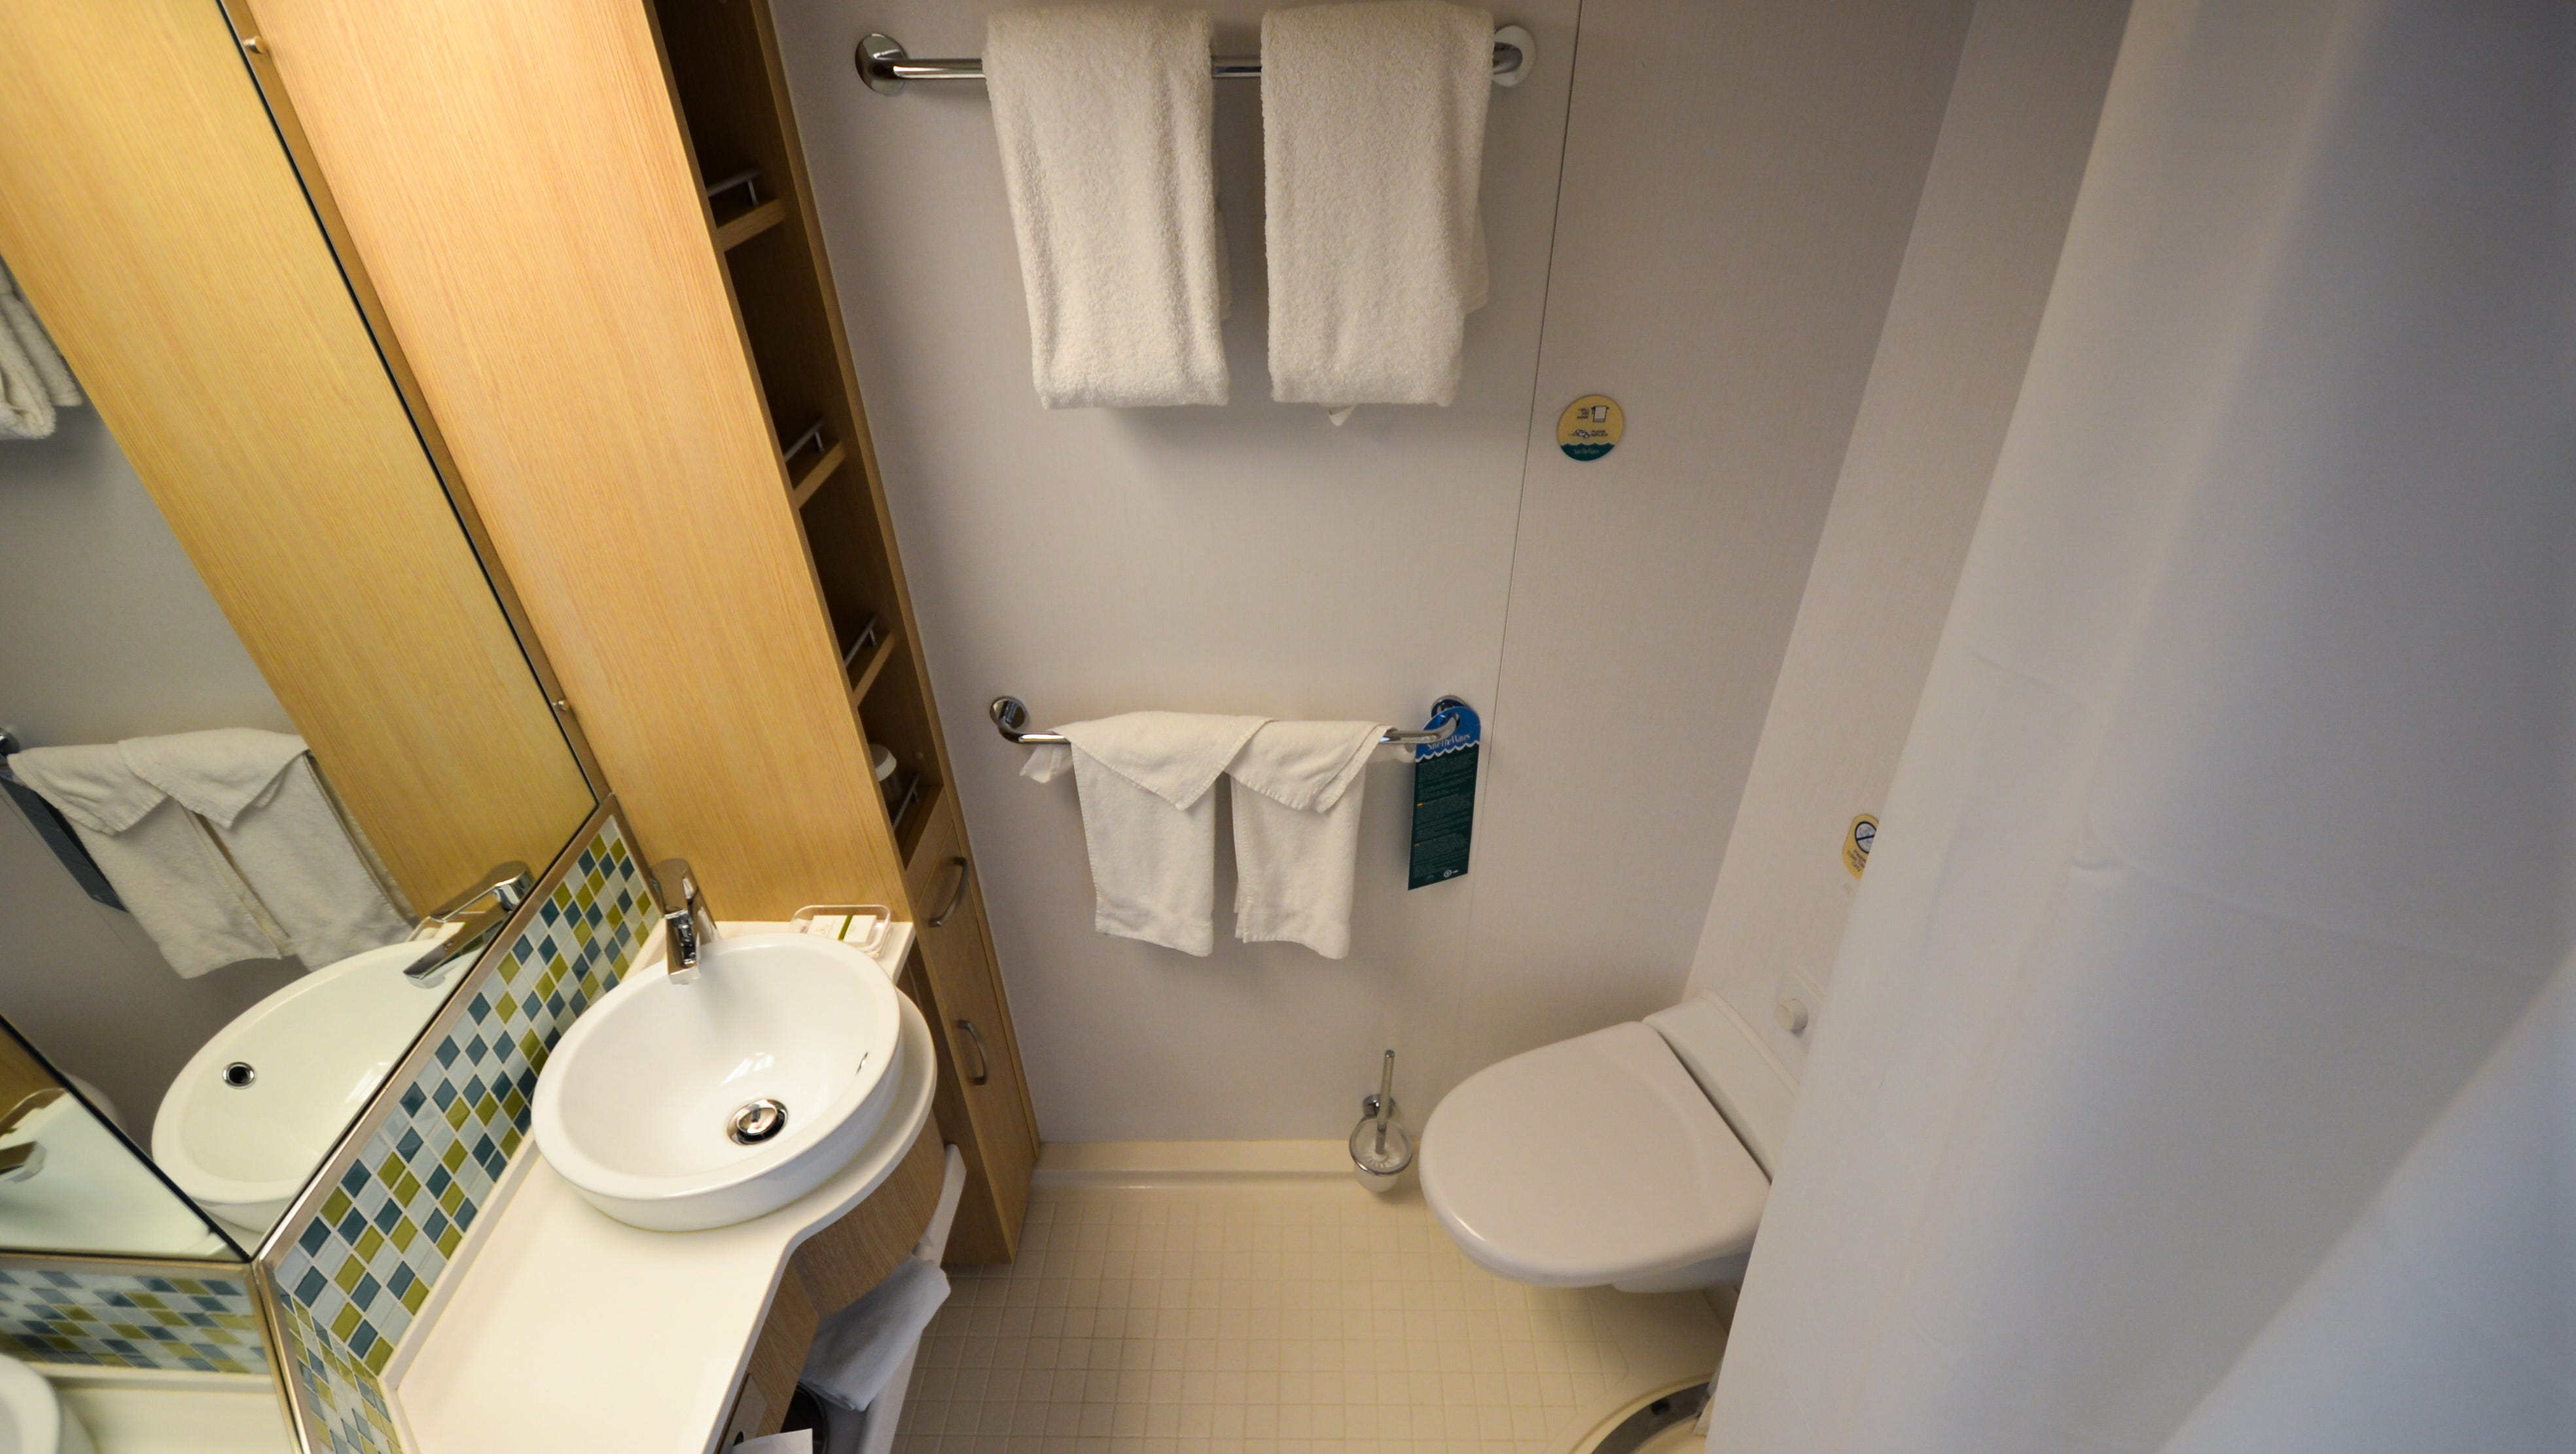 Bathrooms in Ocean View cabins are compact affairs that feature showers but no tubs.